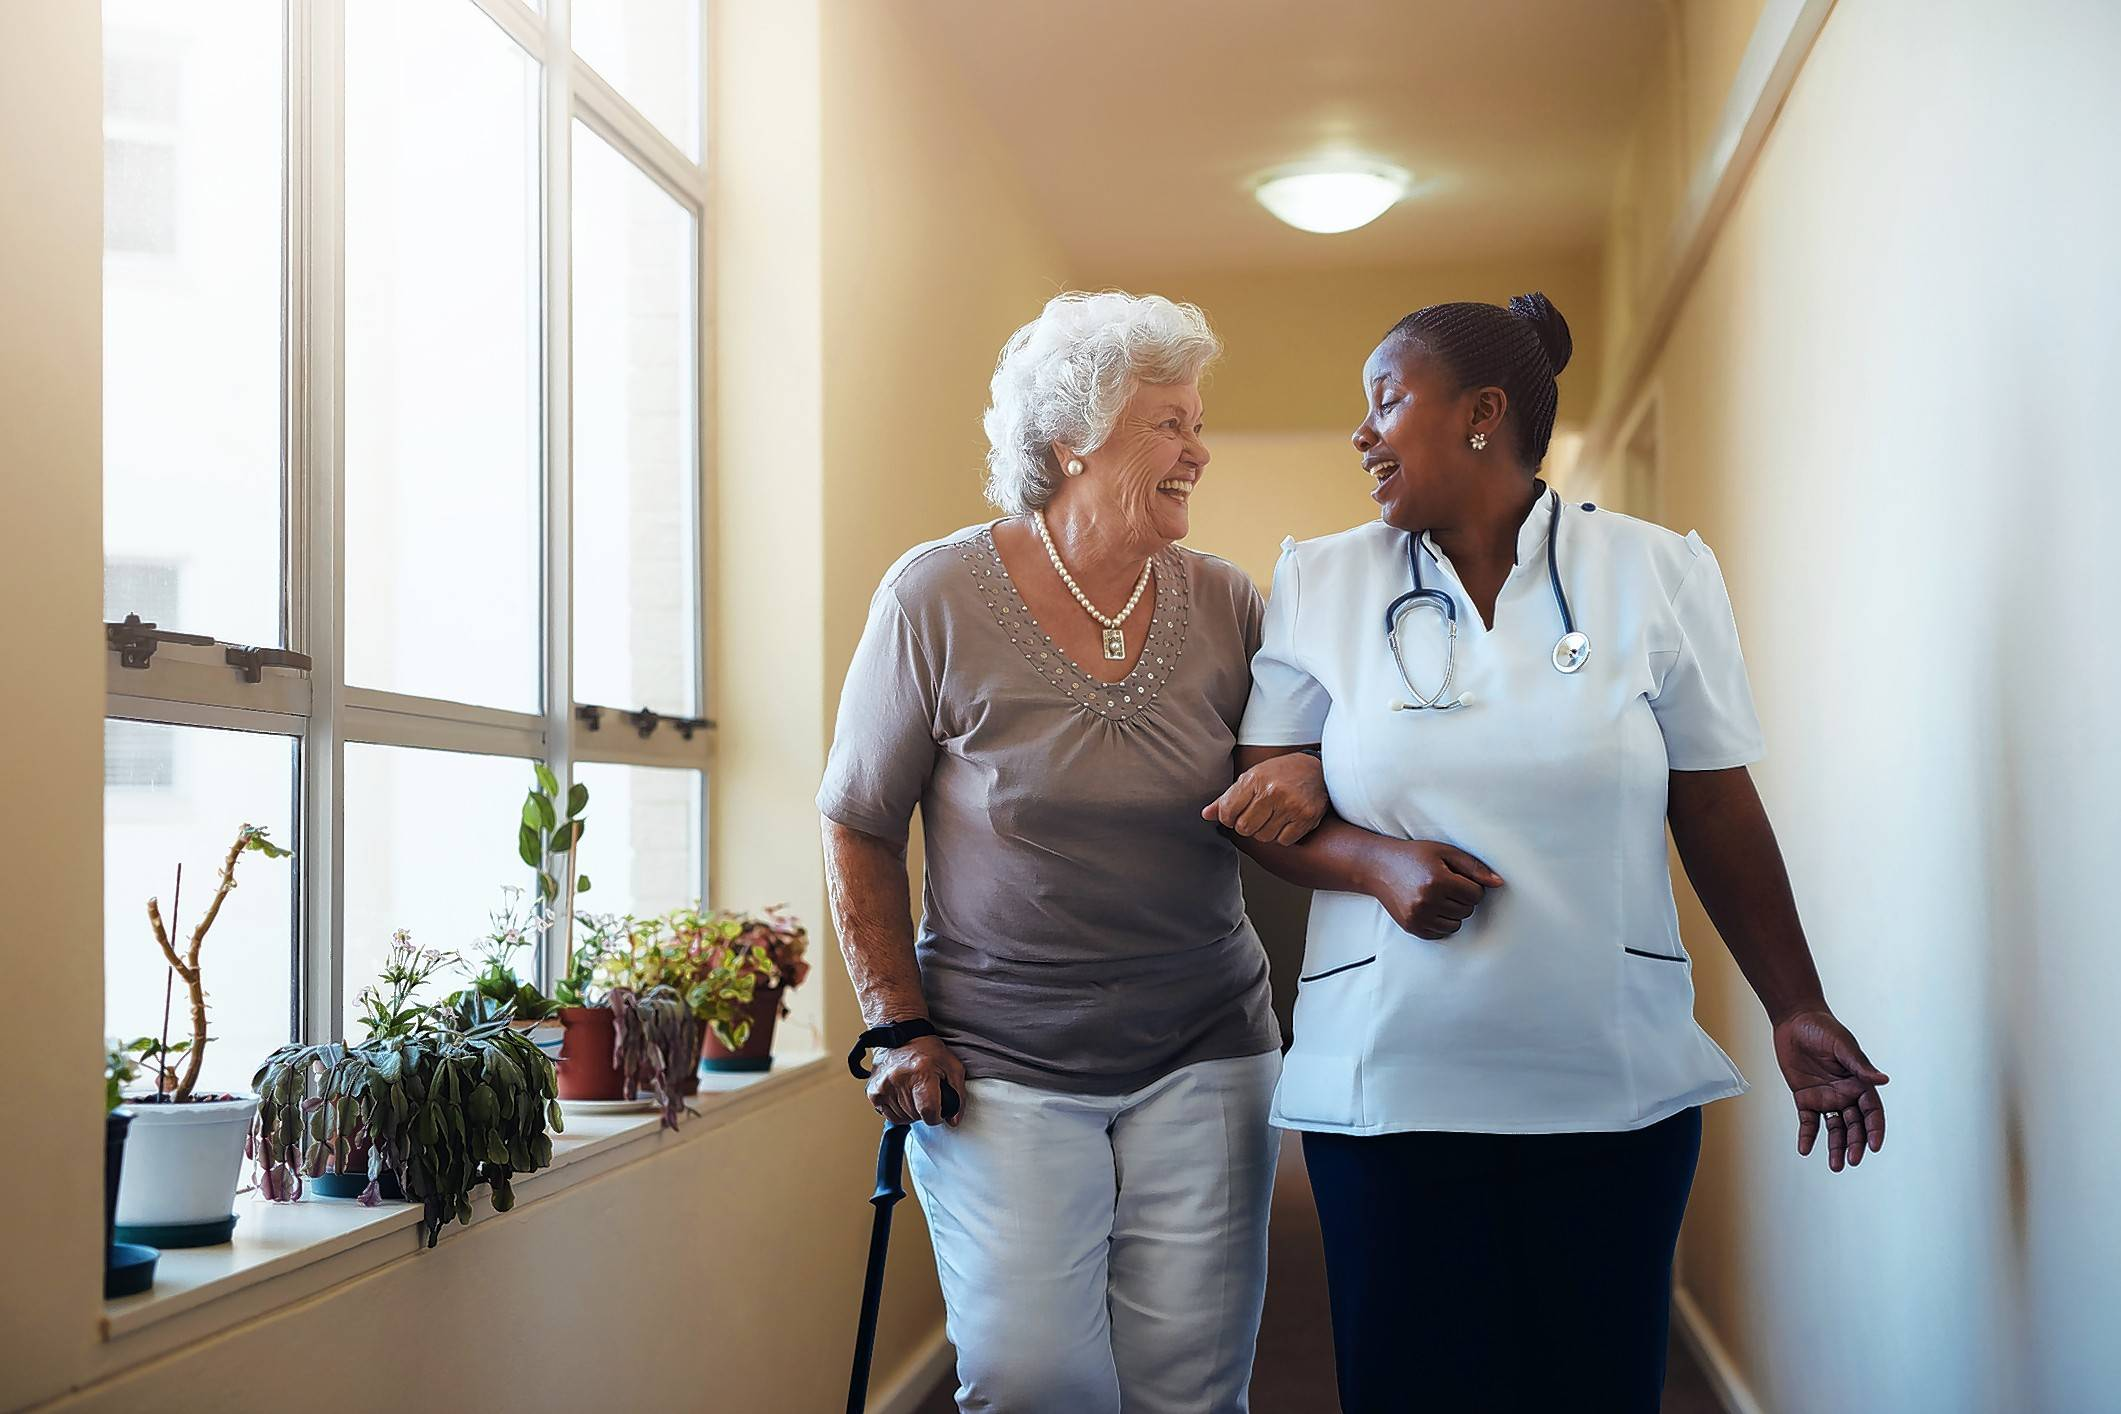 Life plan communities, such as The Moorings of Arlington Heights, offer residents the freedom and social connections of independent living, even after moving into the assisted-living area.